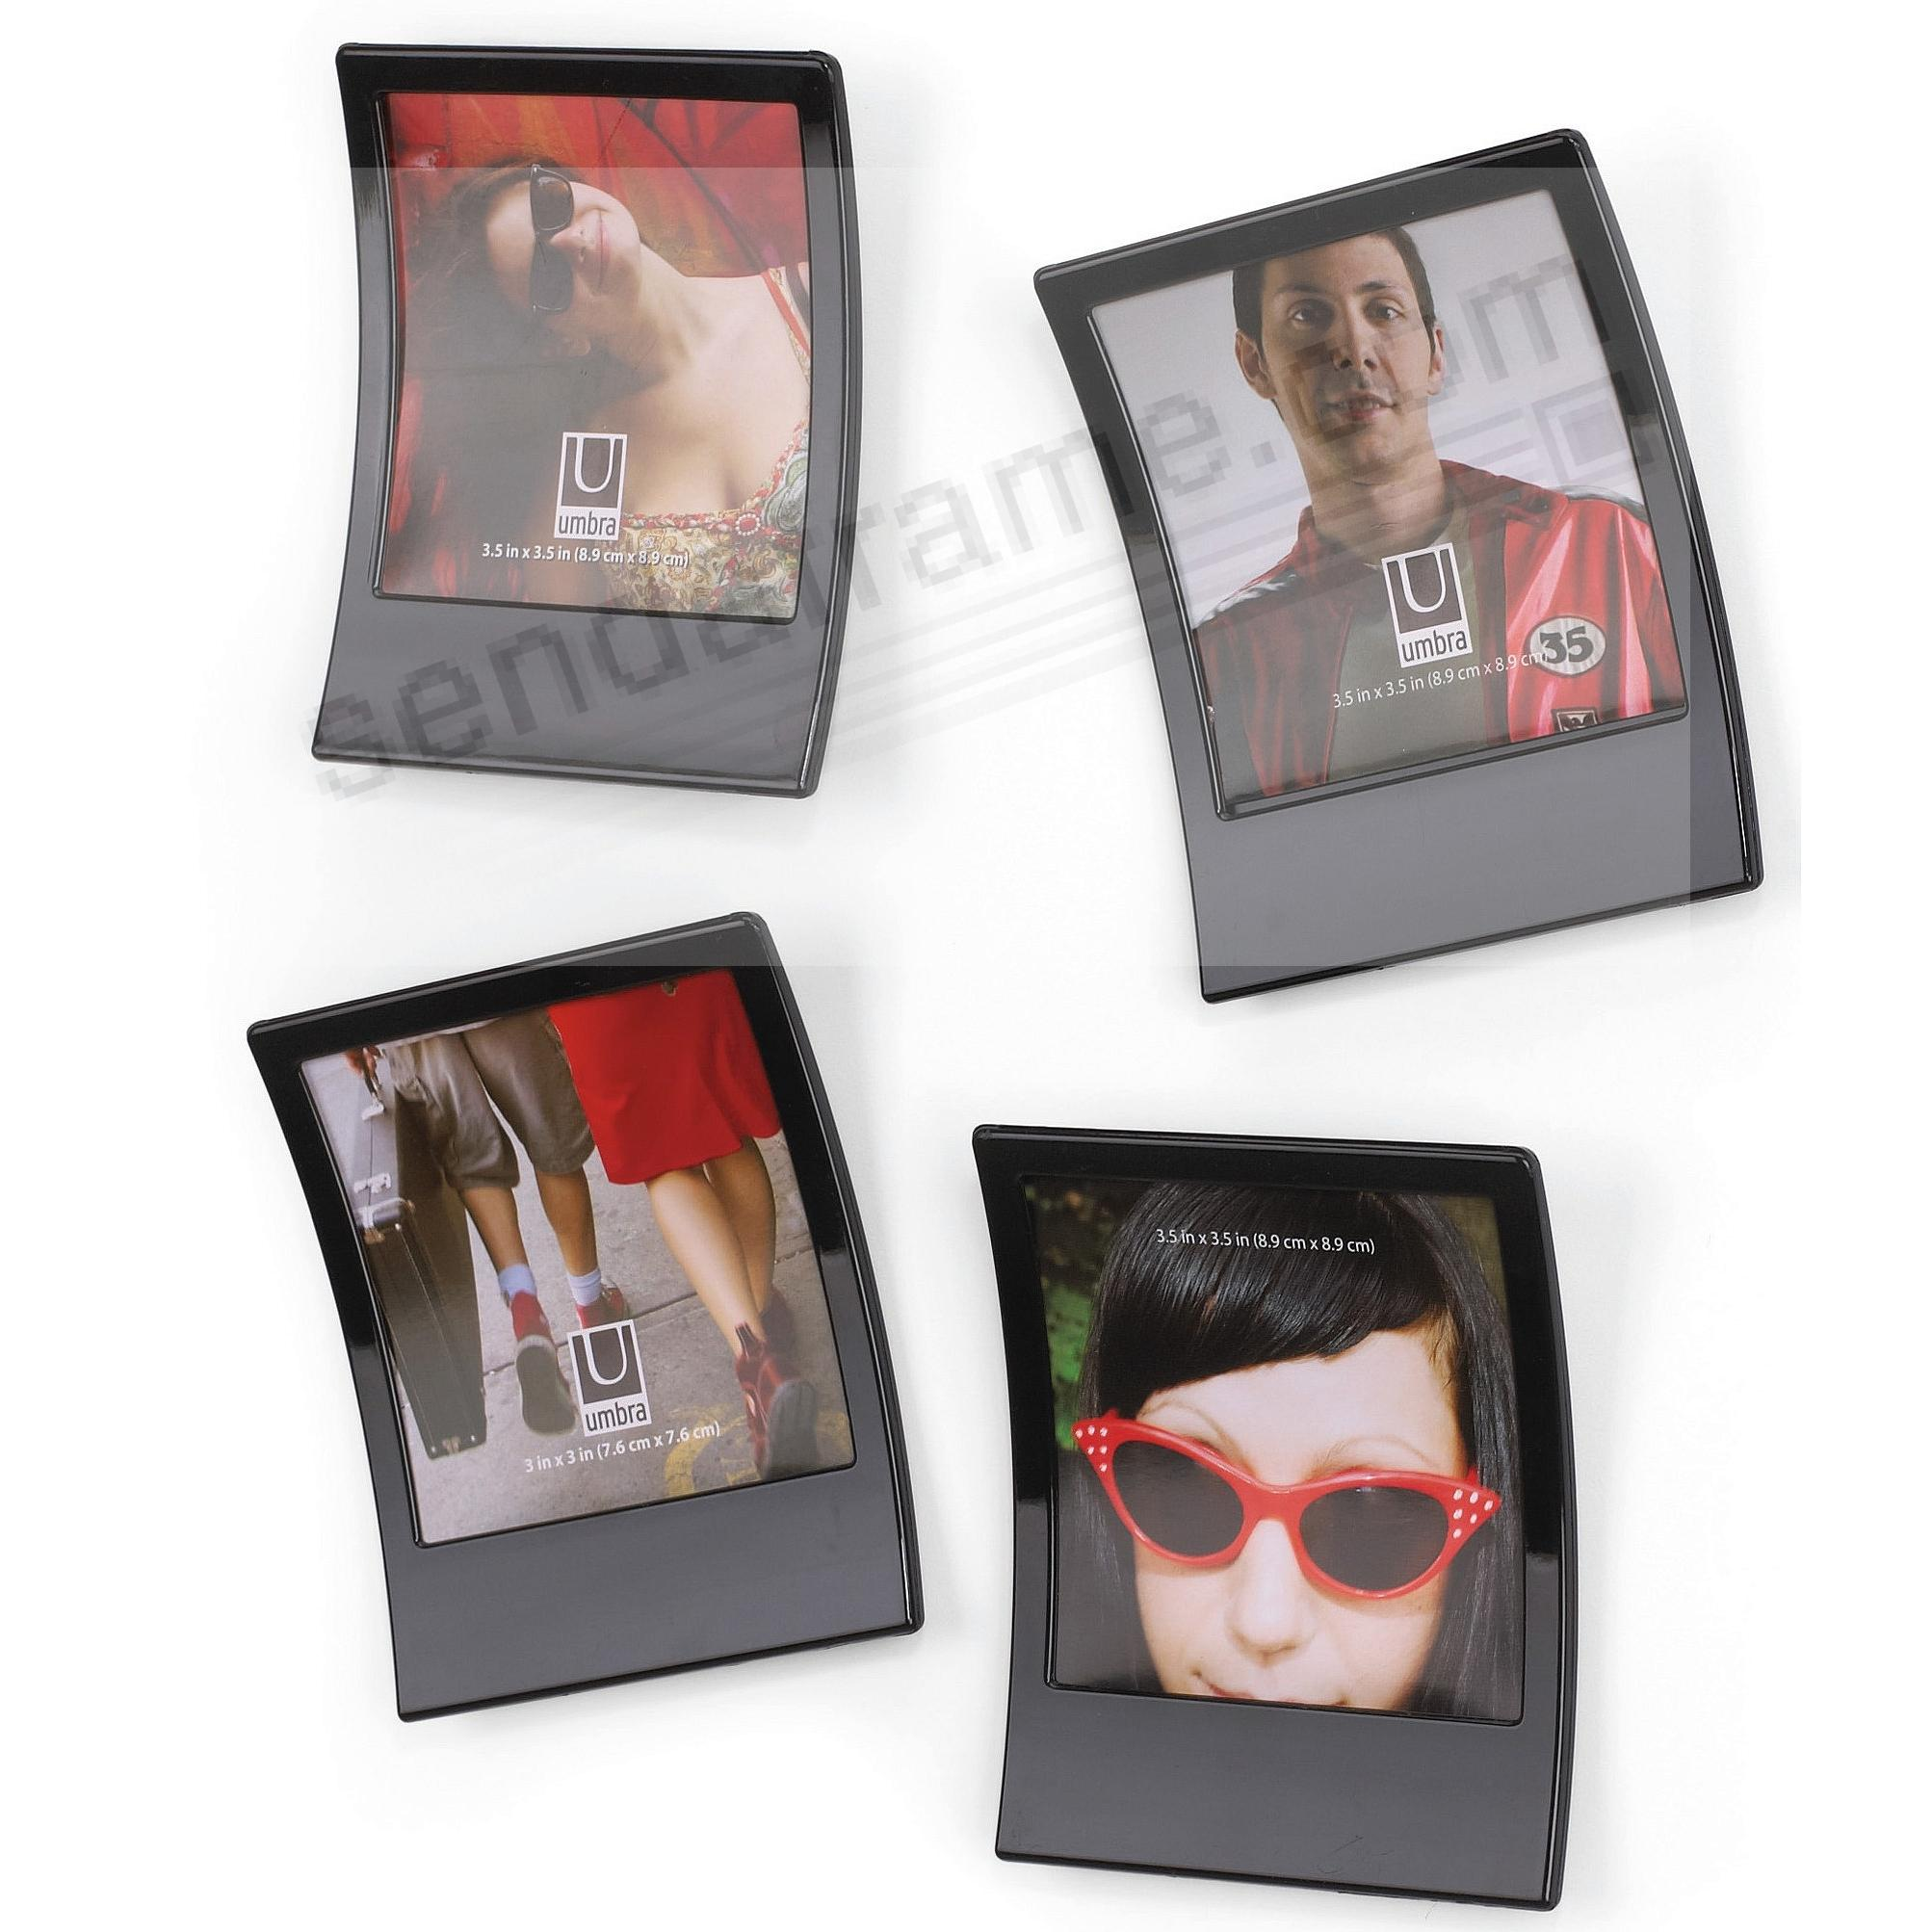 SNAP in Black polaroid inspired frame set (of 9) by Umbra - Picture ...